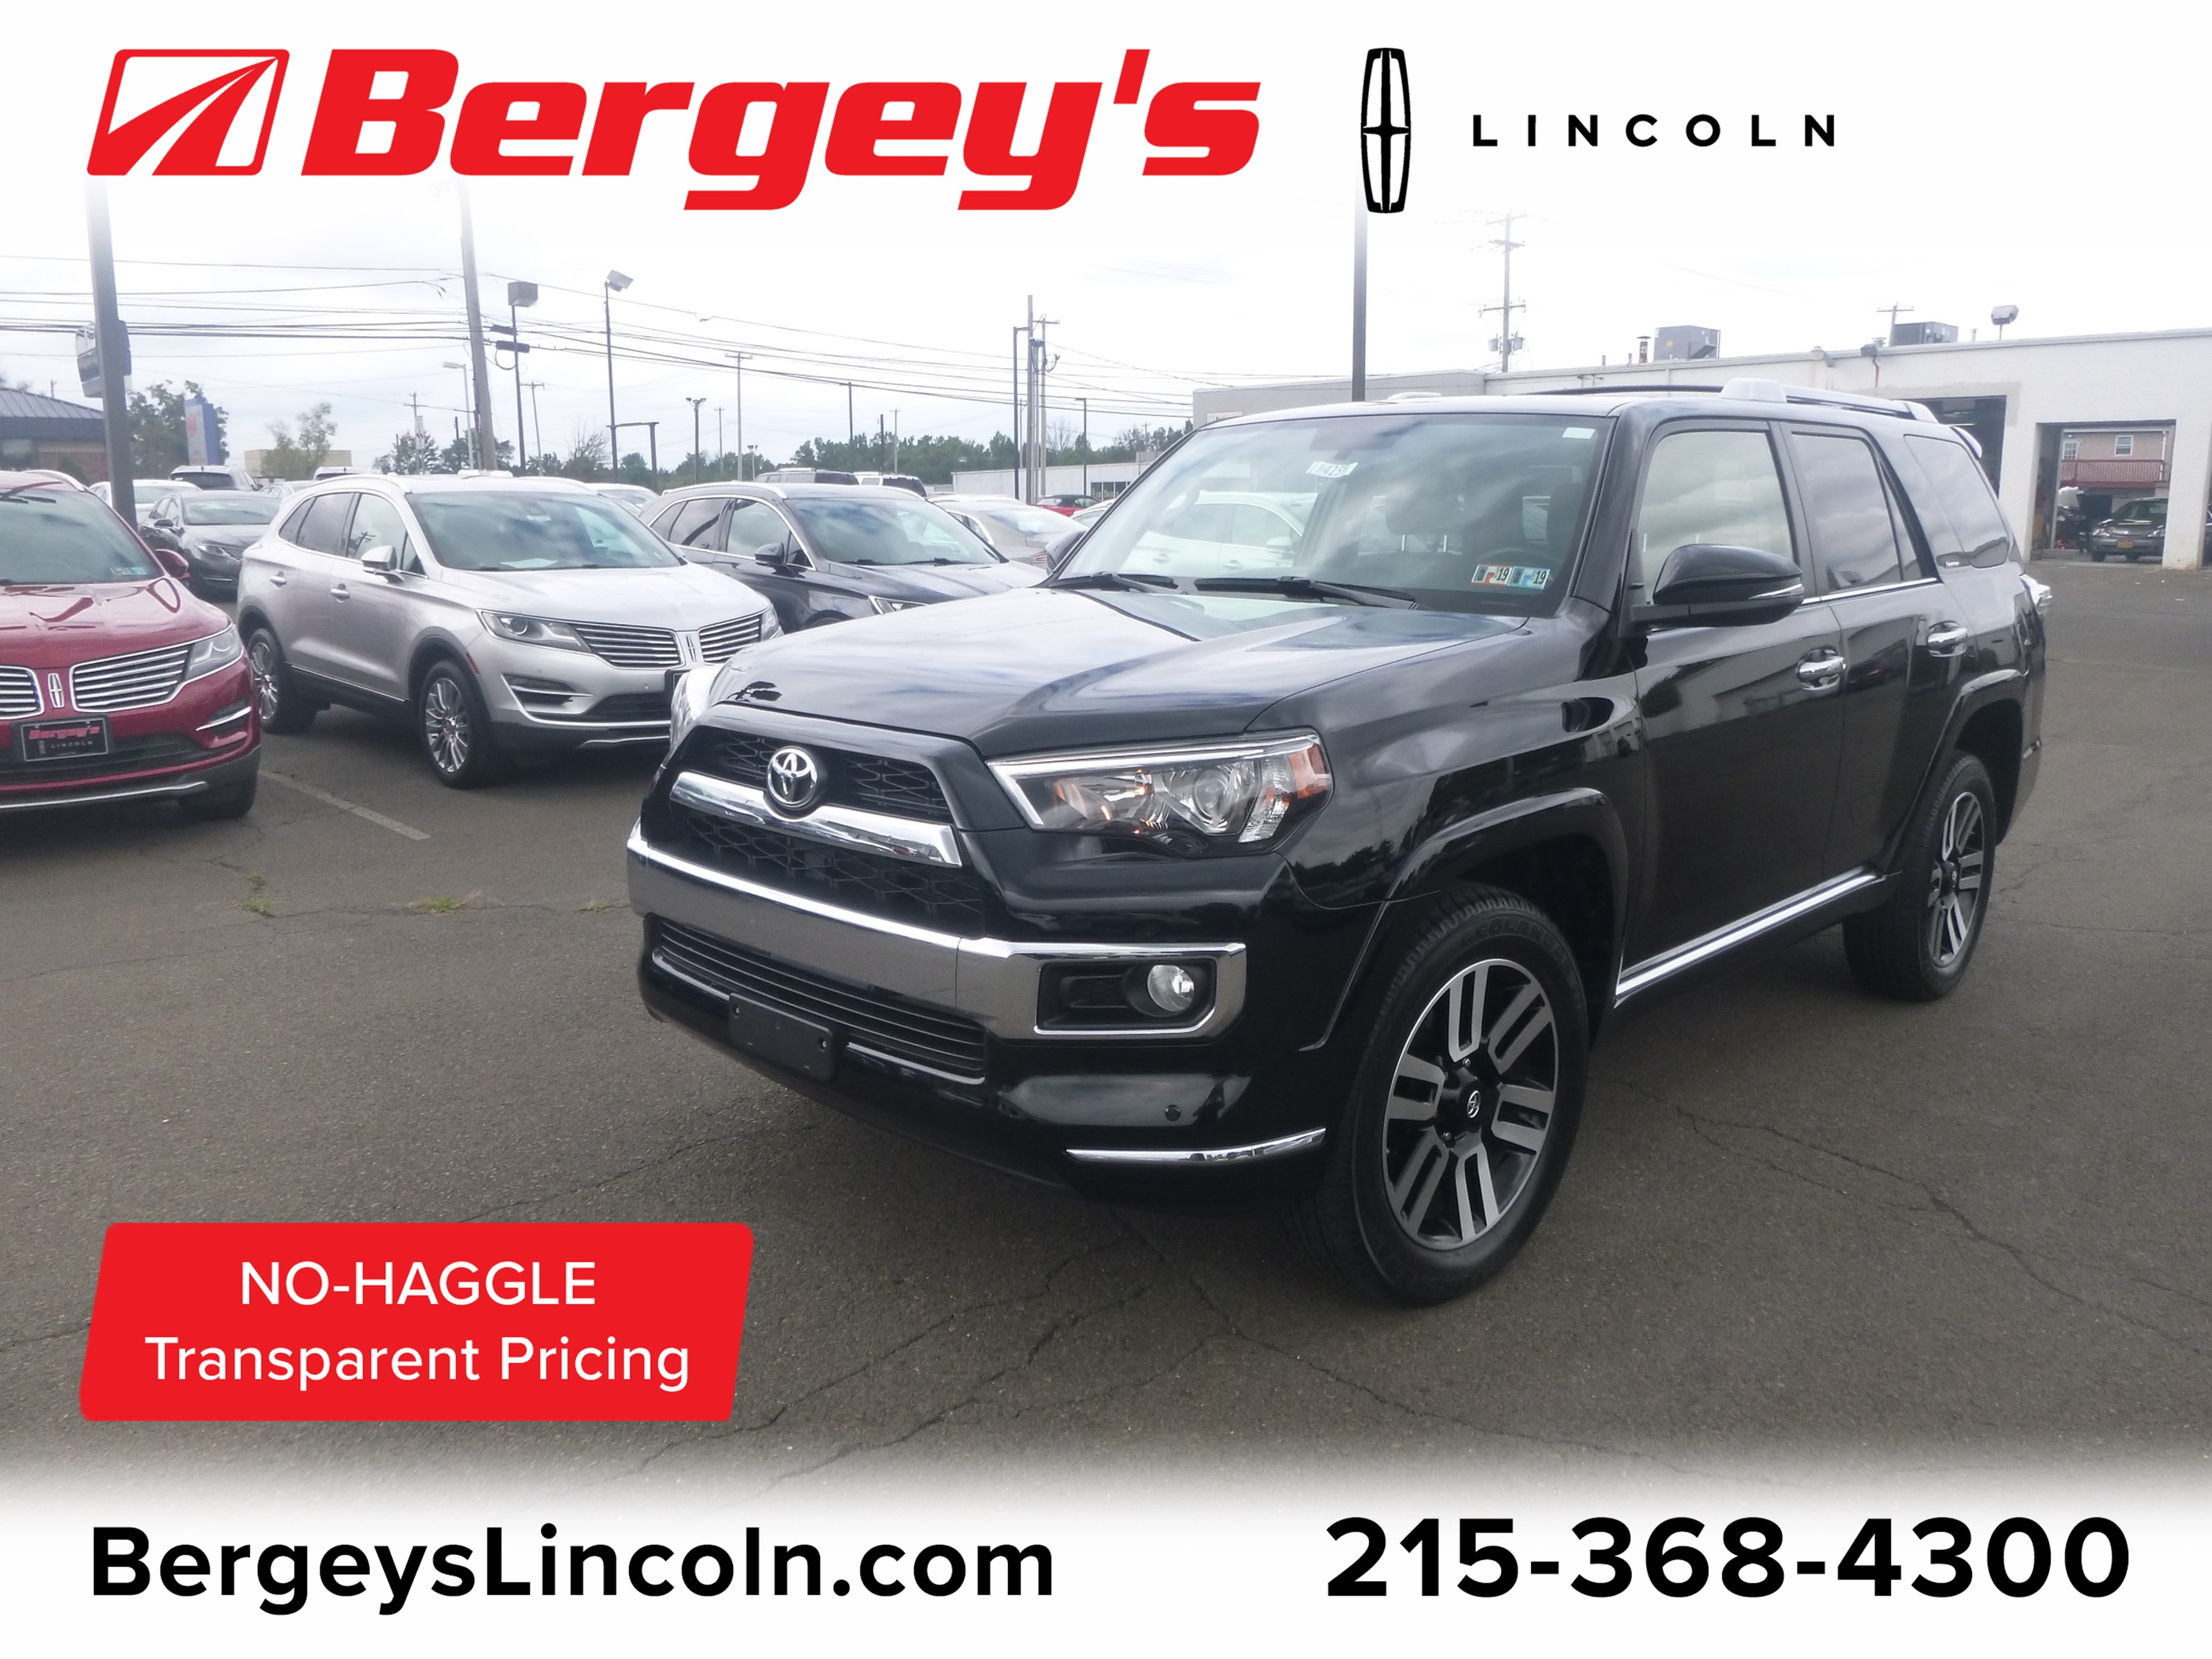 2015 Toyota 4Runner 4.0L 4WD Limited Premium w/ Navigation & Moonroof SUV